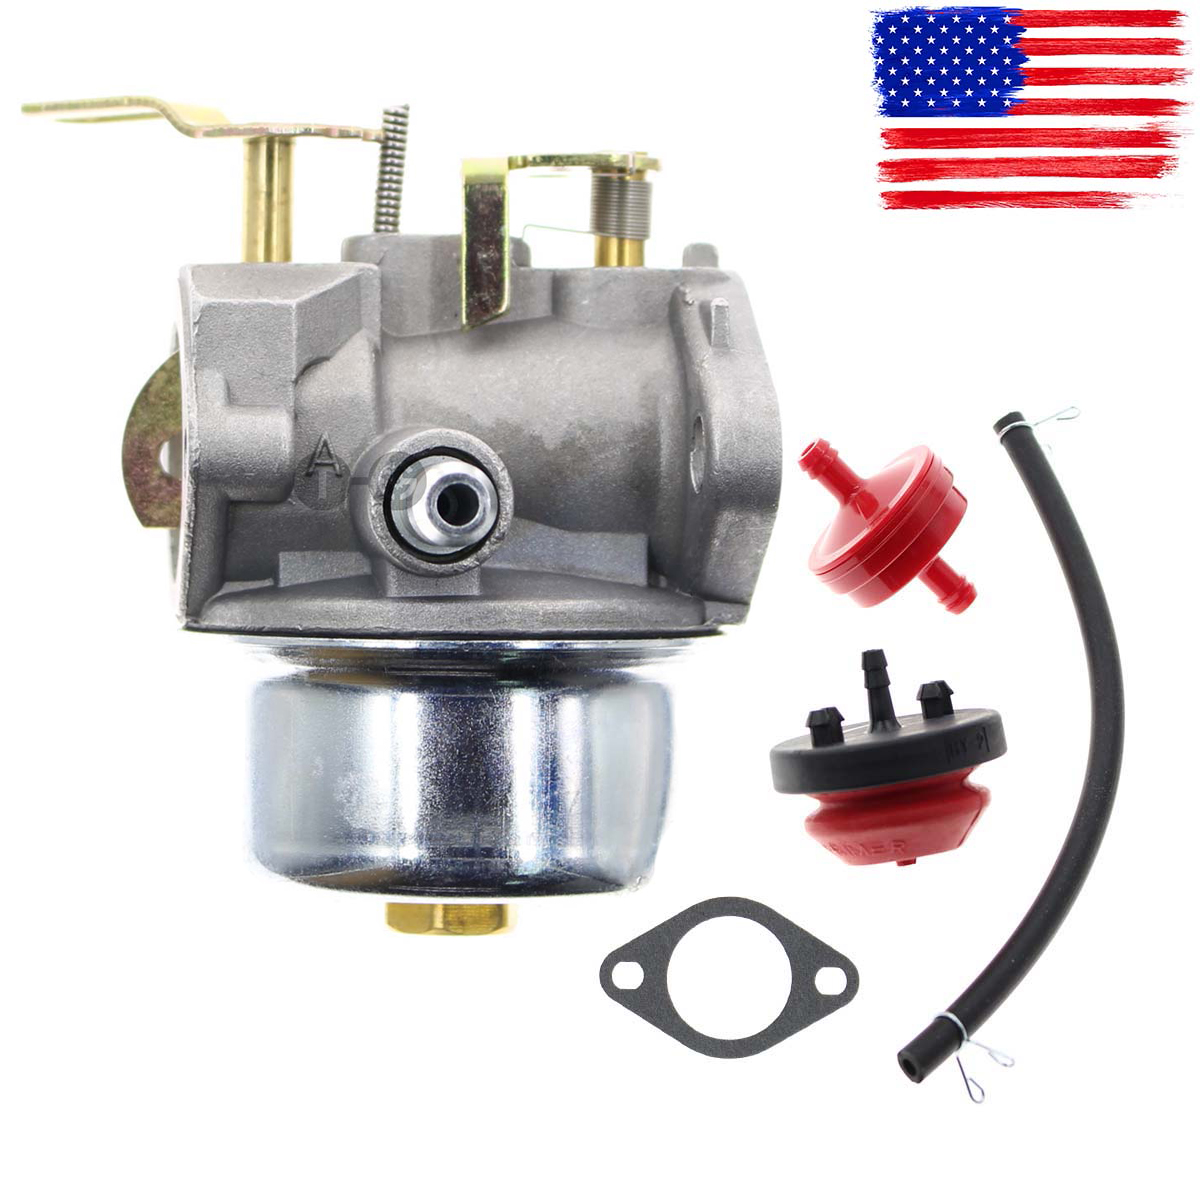 hight resolution of details about carburetor for craftsman sears yard machines mtd 632107 632107a 640084a 640084b